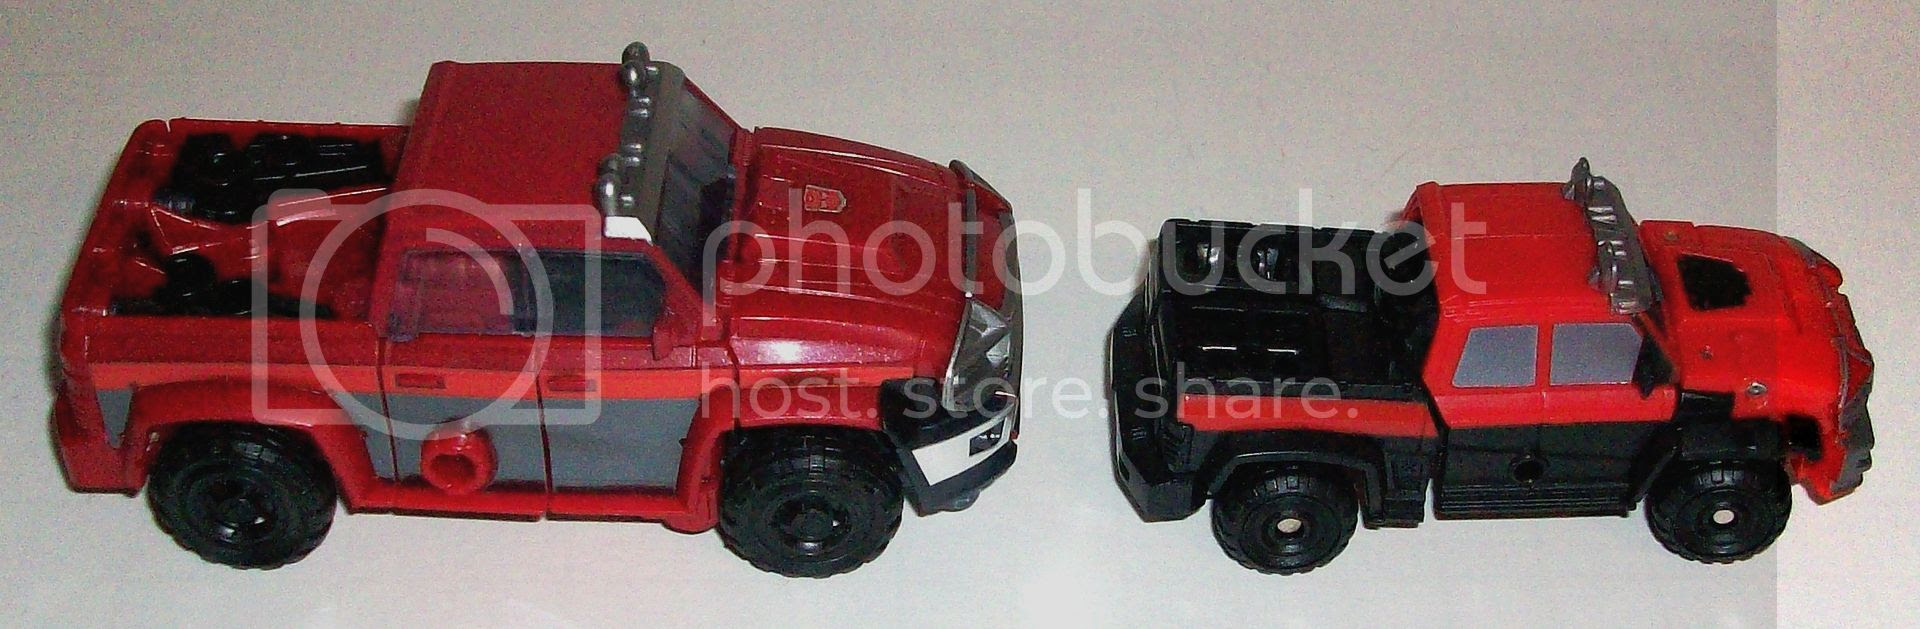 Ironhide AM-20 photo 196_zpse54b954b.jpg